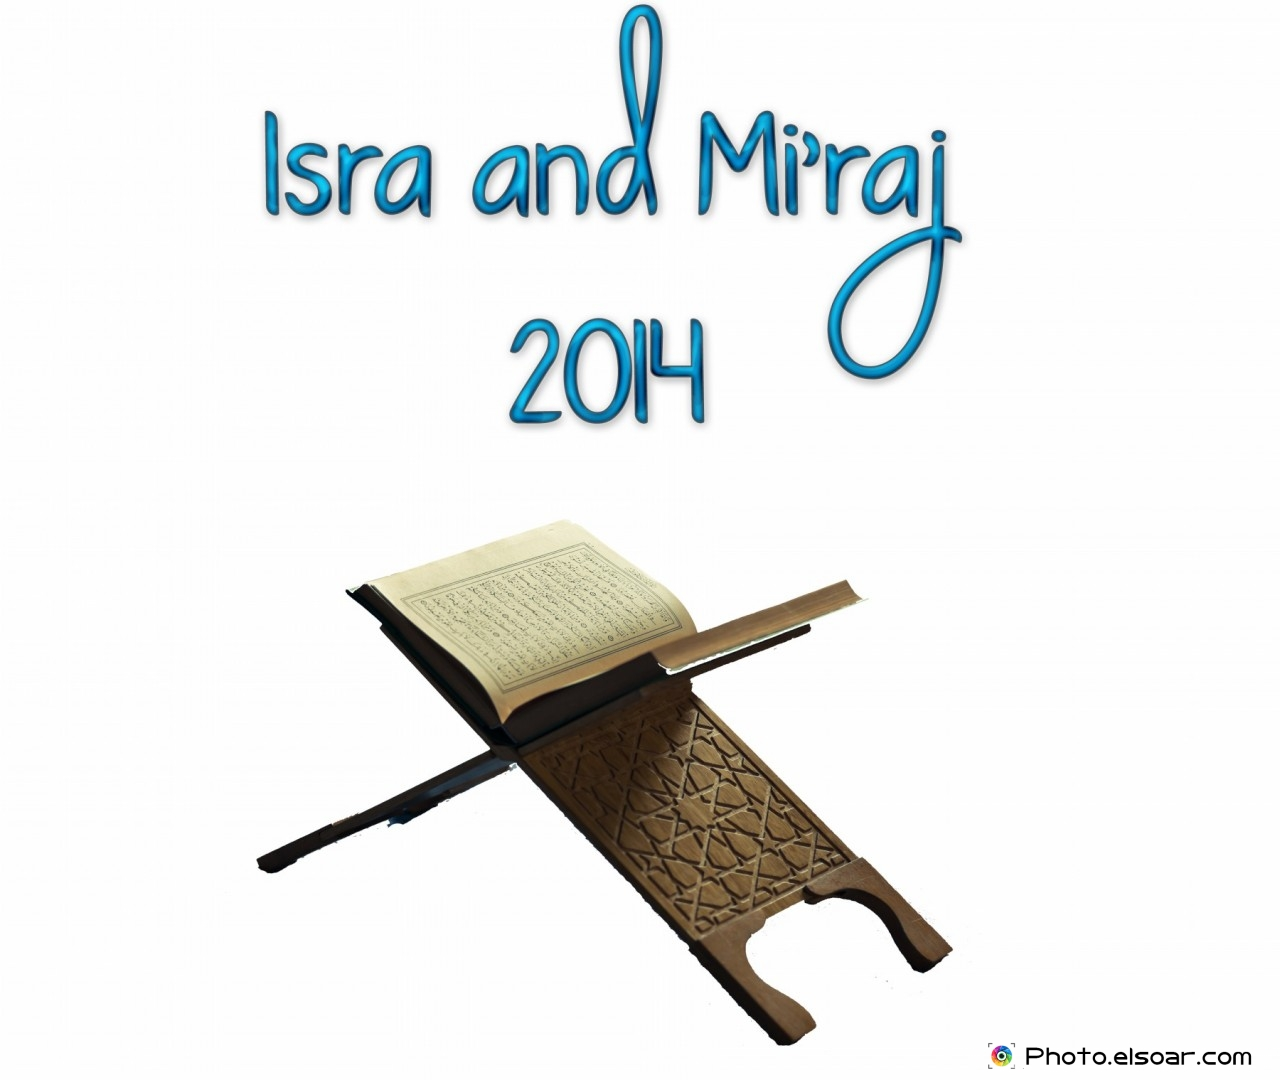 Wallpaper. Isra and Mi'raj 2014, with Quran